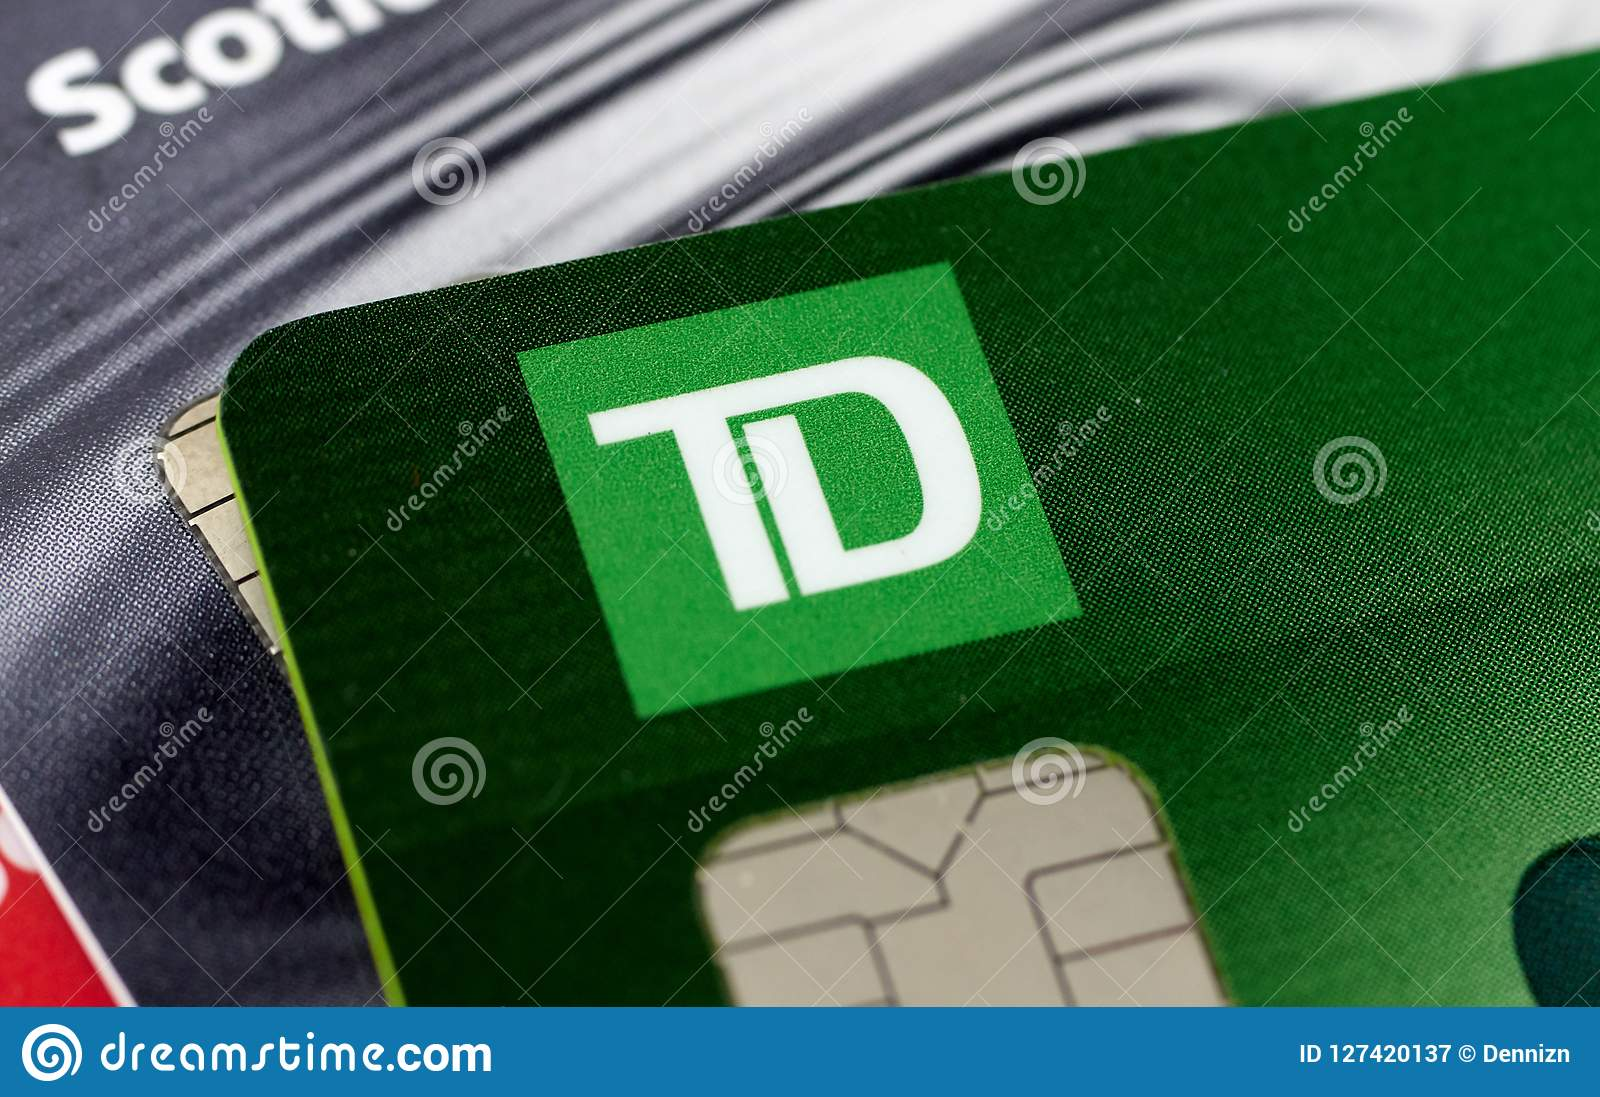 Td Bank Credit Cards Editorial Photography Image Of Credit 127420137